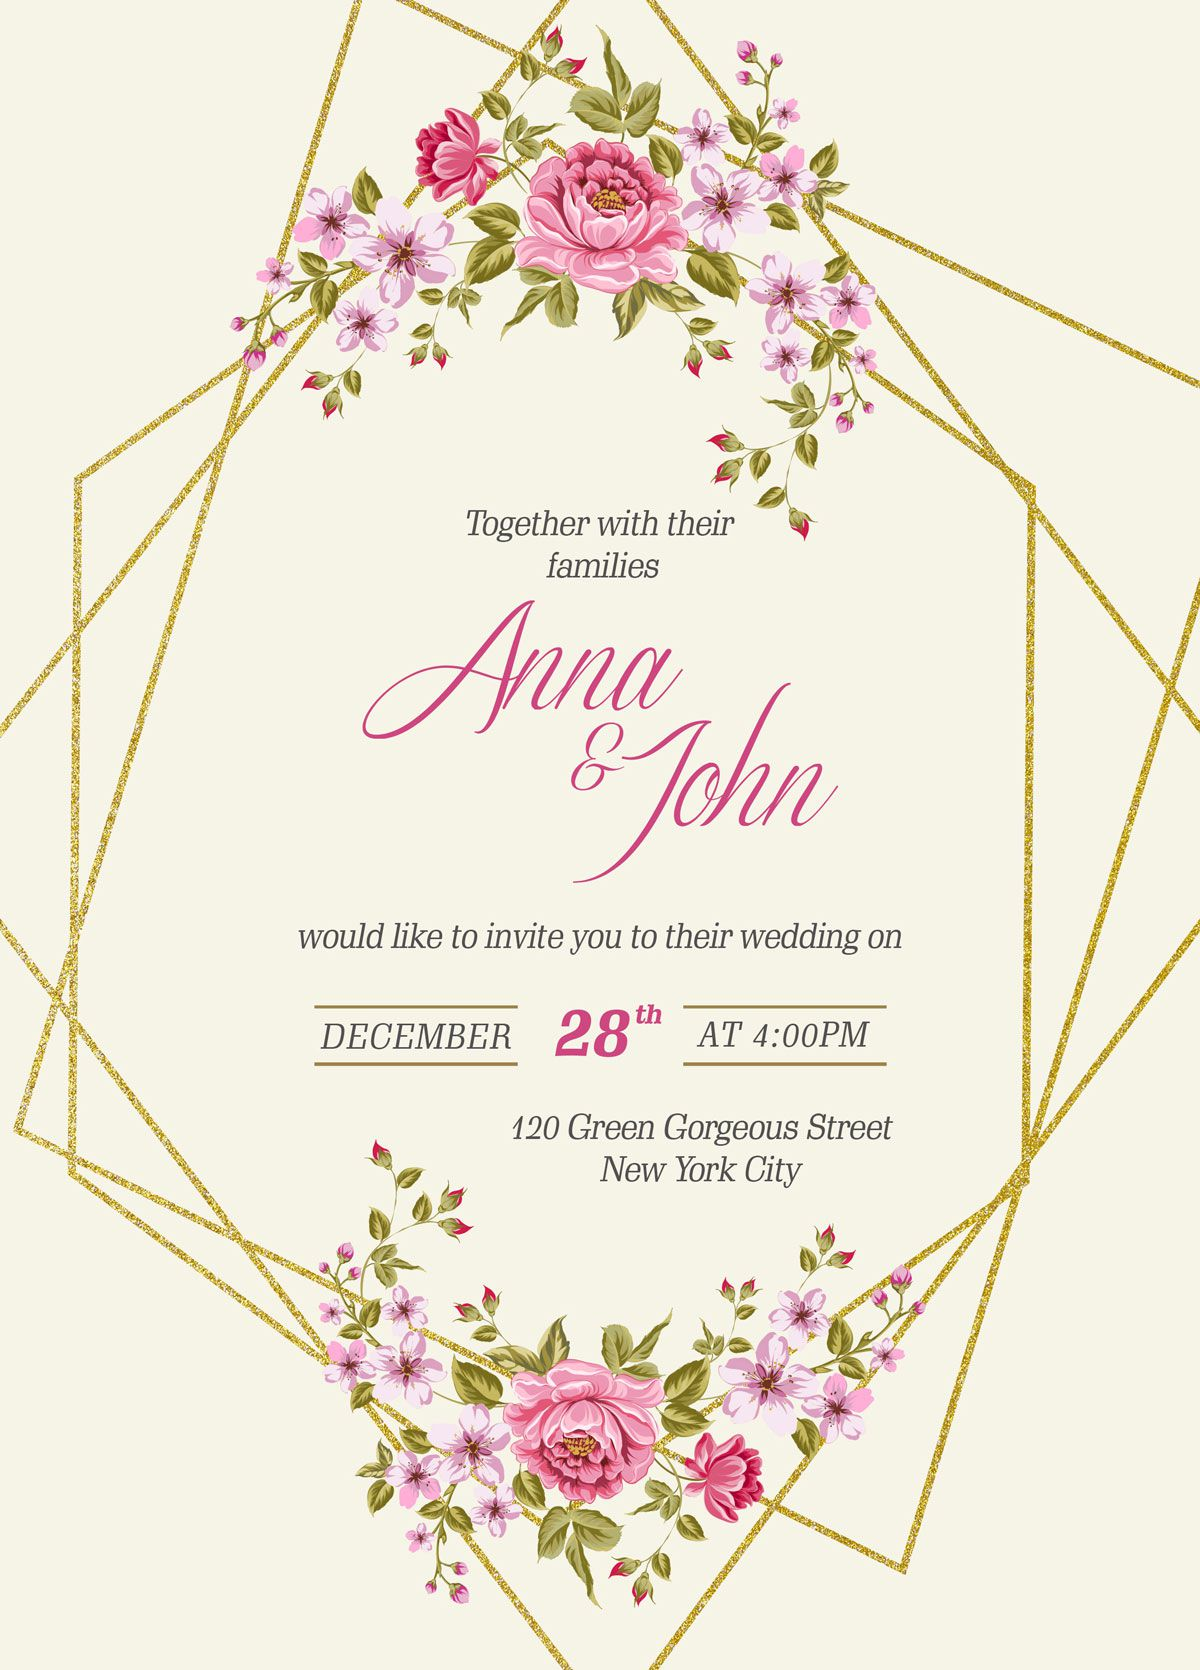 005 Staggering Photoshop Wedding Invitation Template Concept  Templates Hindu Psd Free Download CardFull